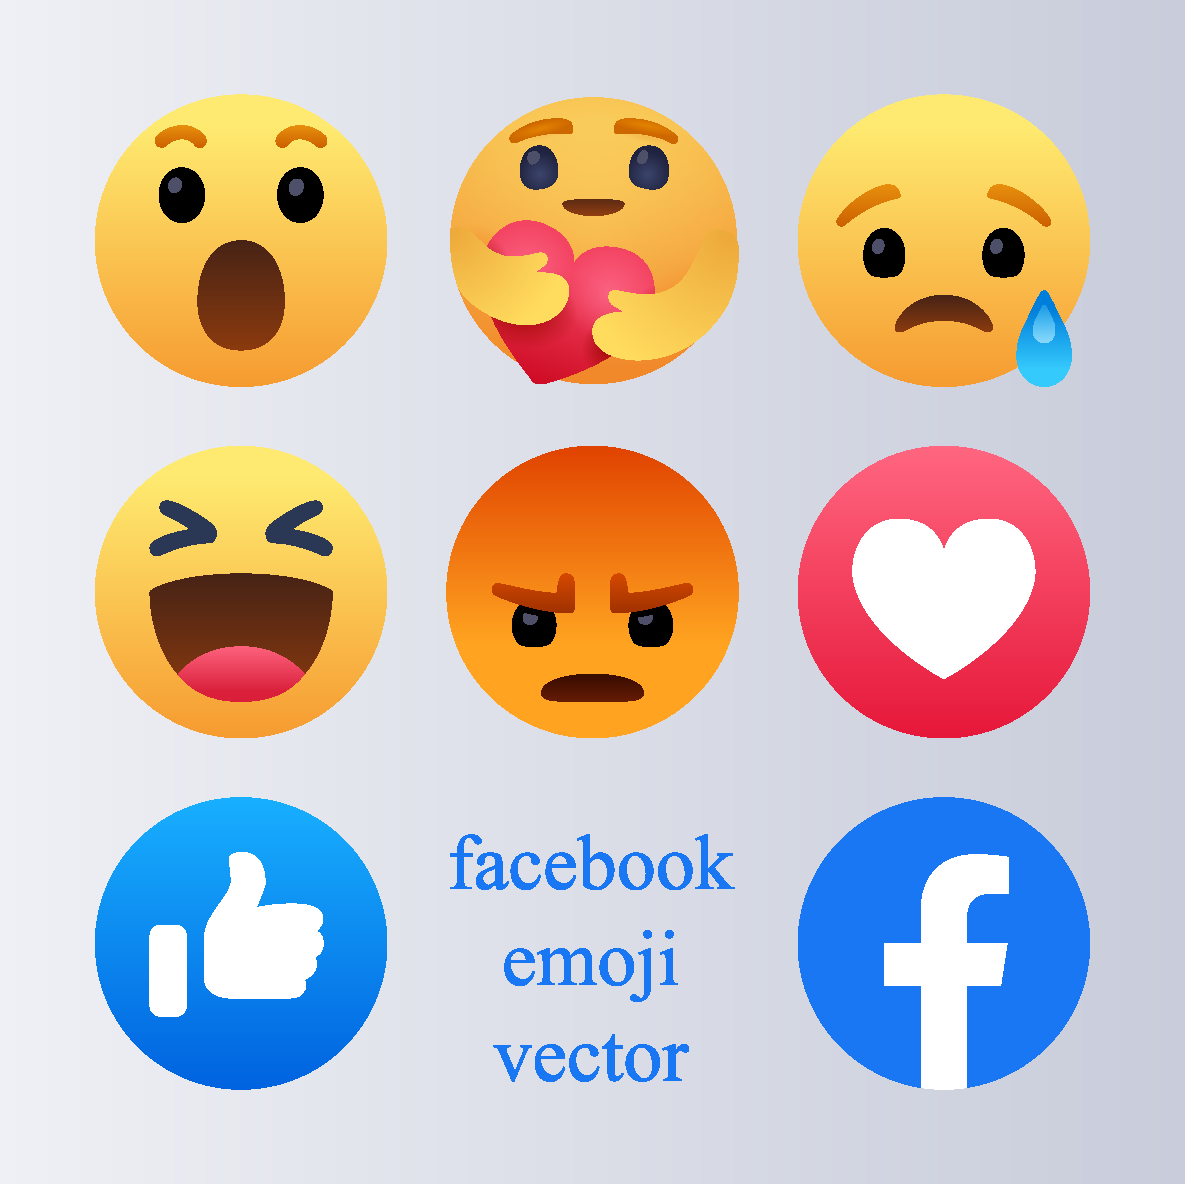 facebook emoji vector svg eps ai png psd vector download free #facebook #emoji #emojis #emoticons #like #graphics #happy #coreldraw #graphicdesign #love #heart #vectorartist #vectorartwork #vectorart #graphic #illustrator #icon #icons #vector #design #heart #designer #logo #logos #photoshop #button #buttons #freepik #illustration #art